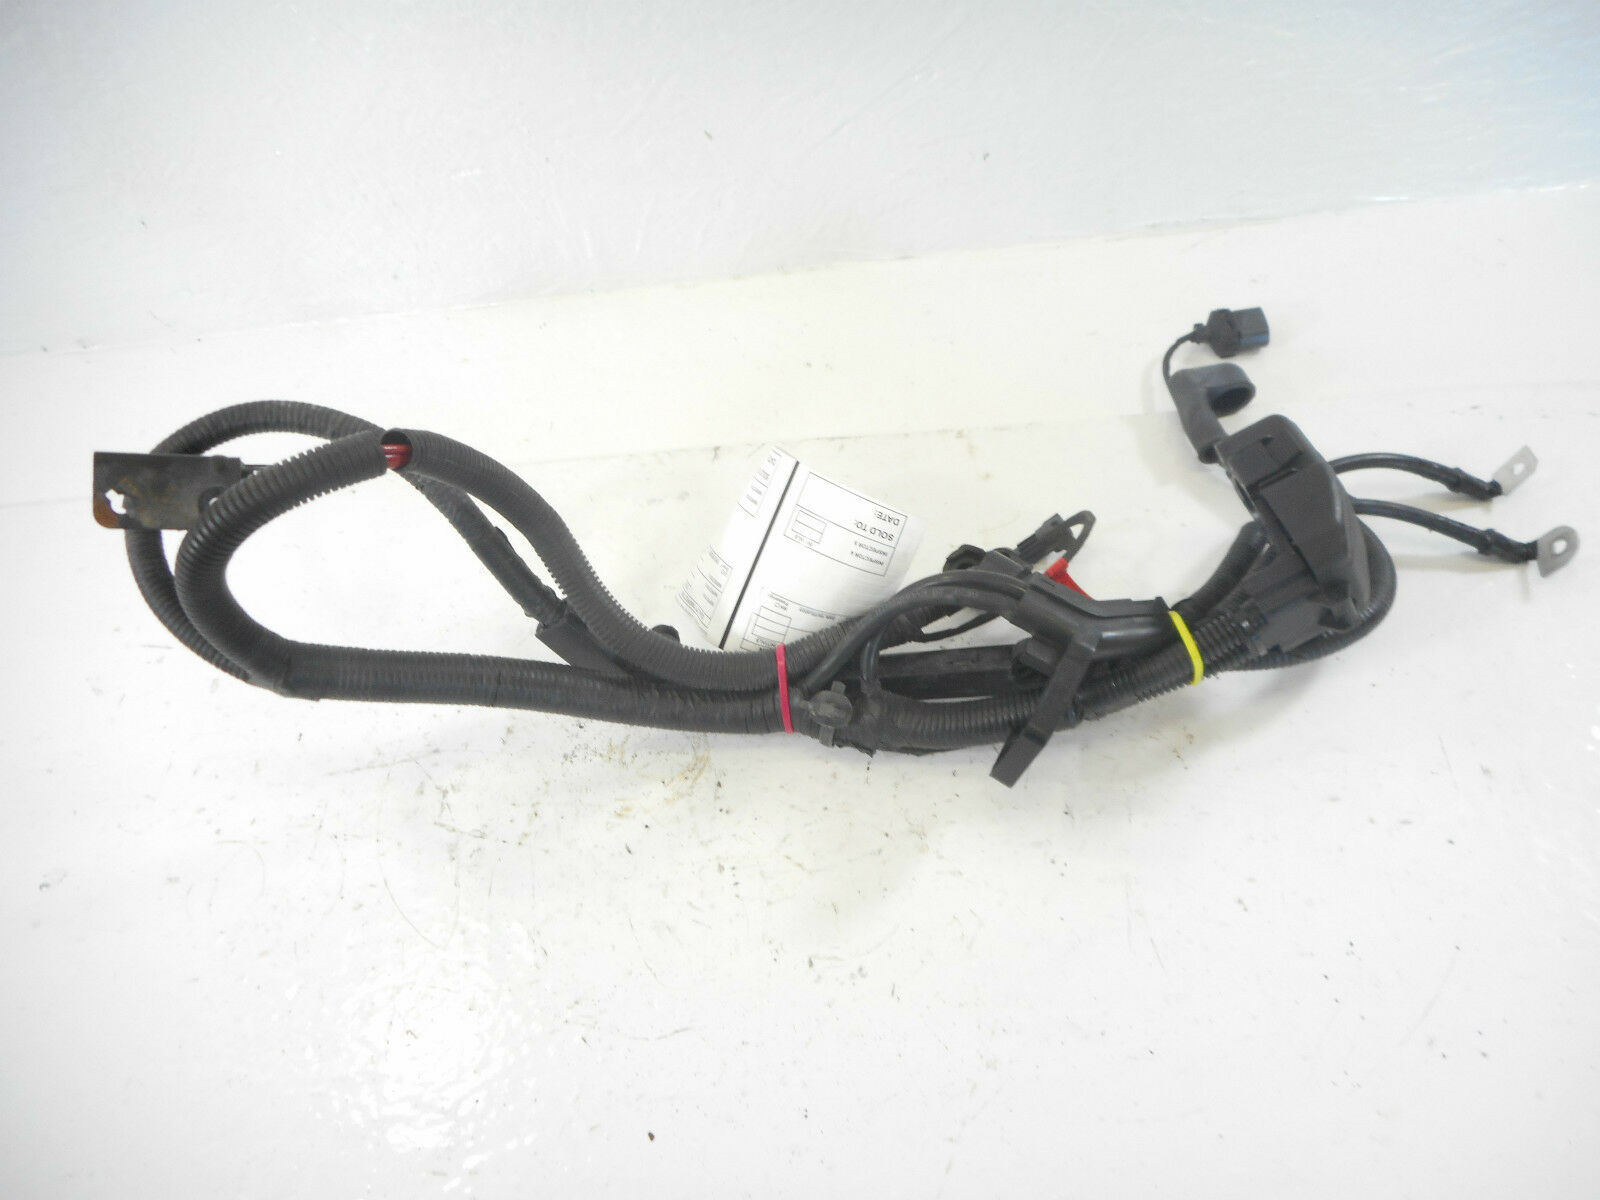 s l1600 2012 hyundai elantra hybrid 2 0l battery positive cable & wiring 2012 hyundai elantra wiring diagram at metegol.co